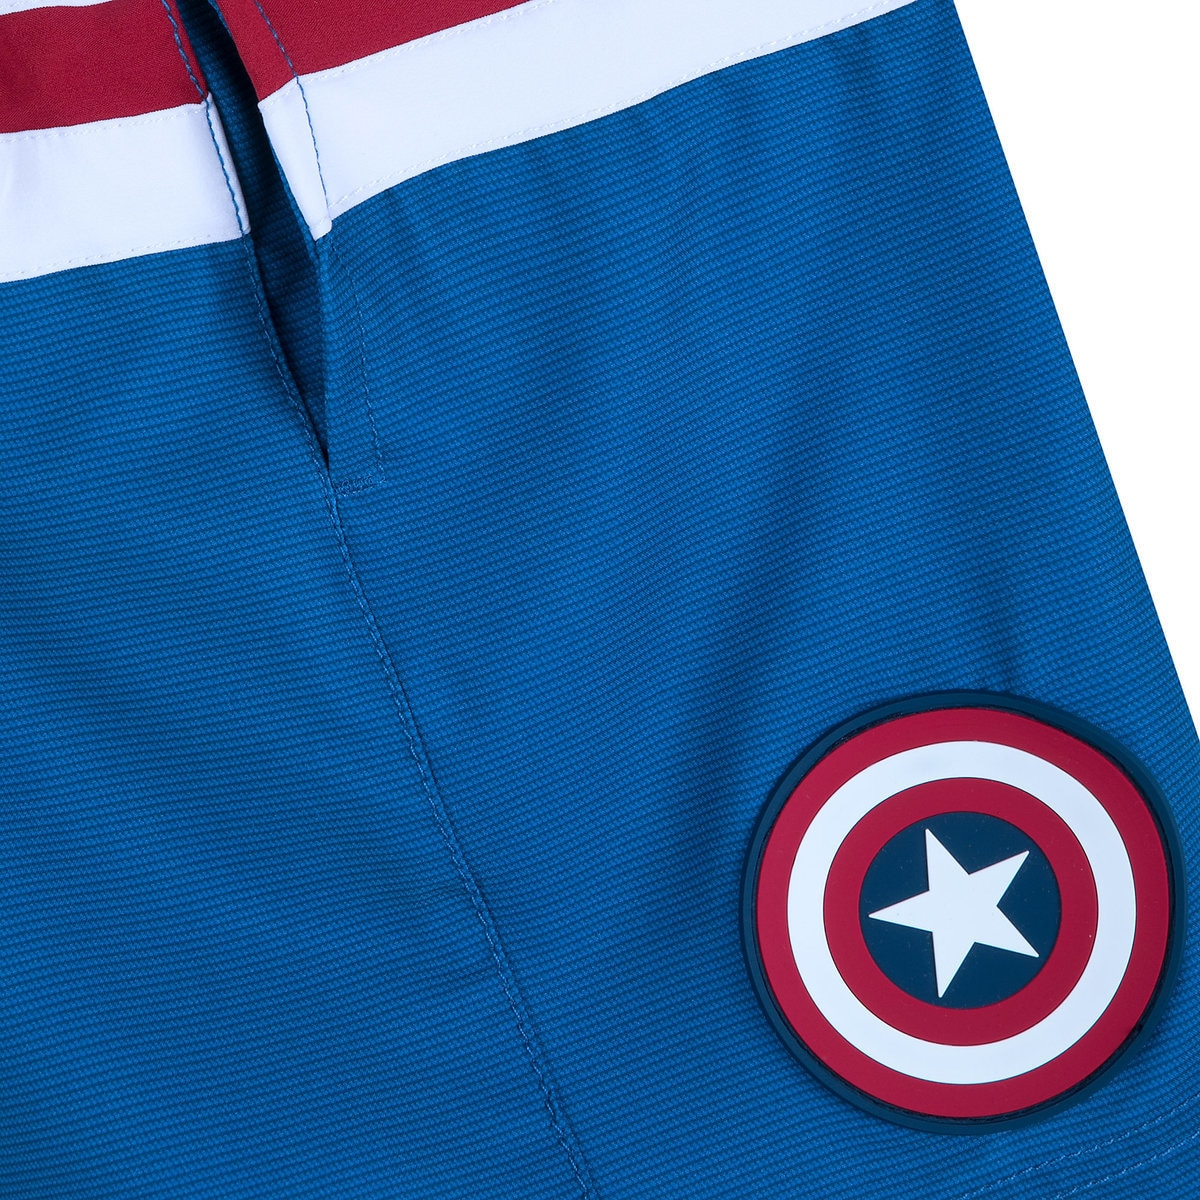 e5a01e85d7 Product Image of Captain America Swim Trunks for Kids # 4